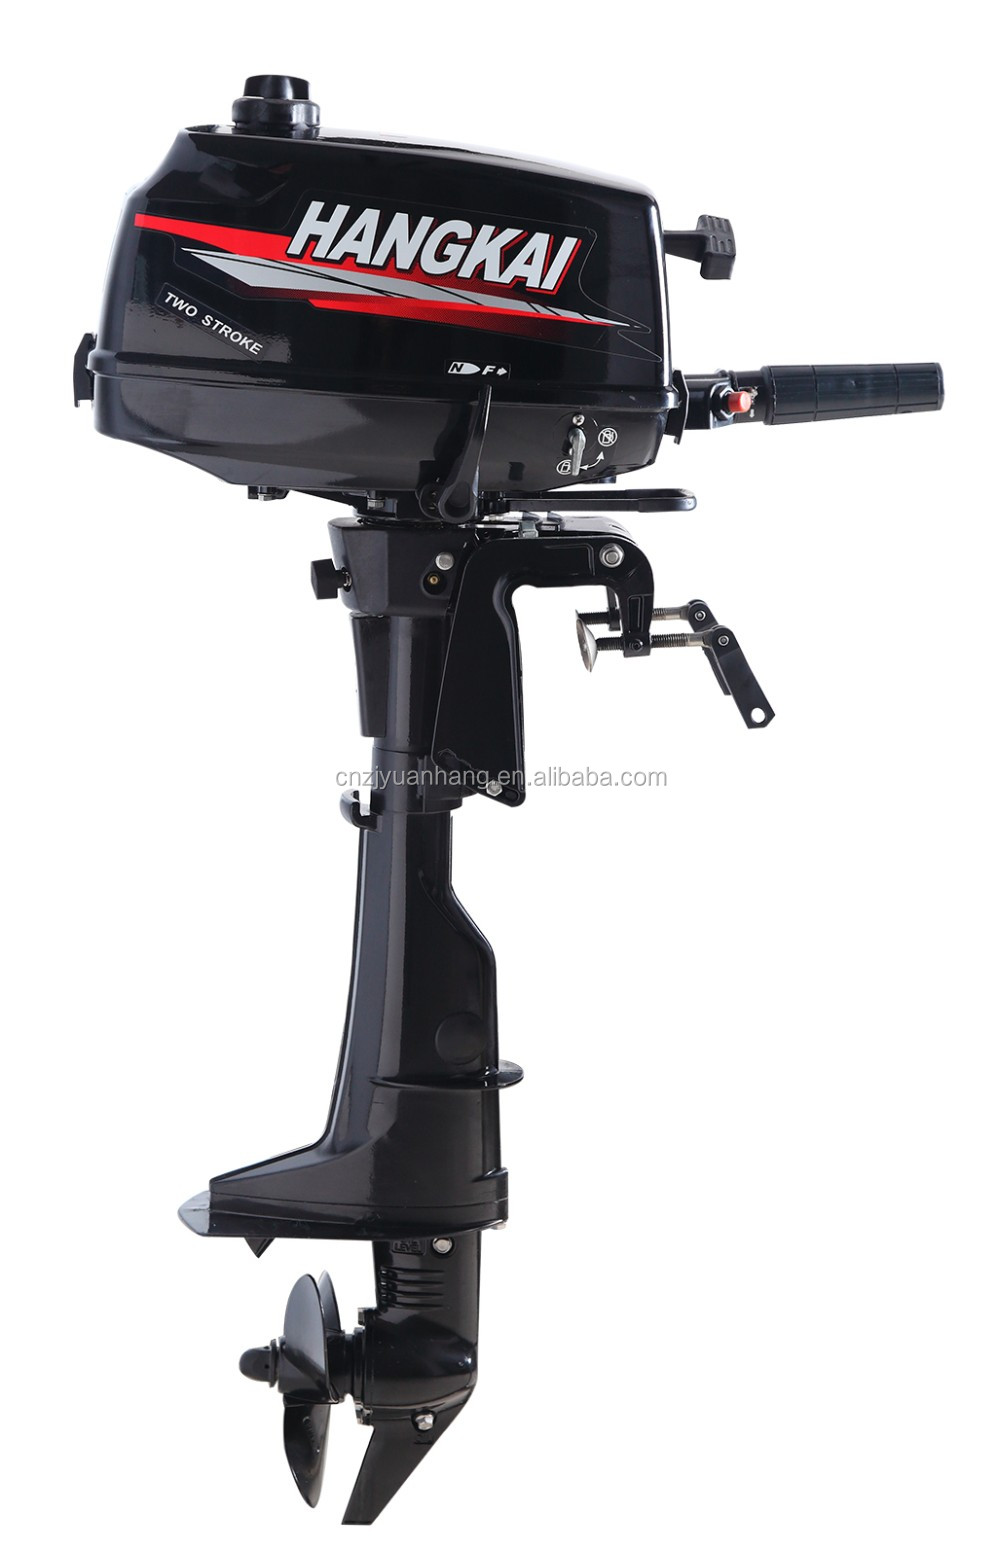 Hangkai 4hp 2 Stroke Outboard Motor For Inflatable Boat